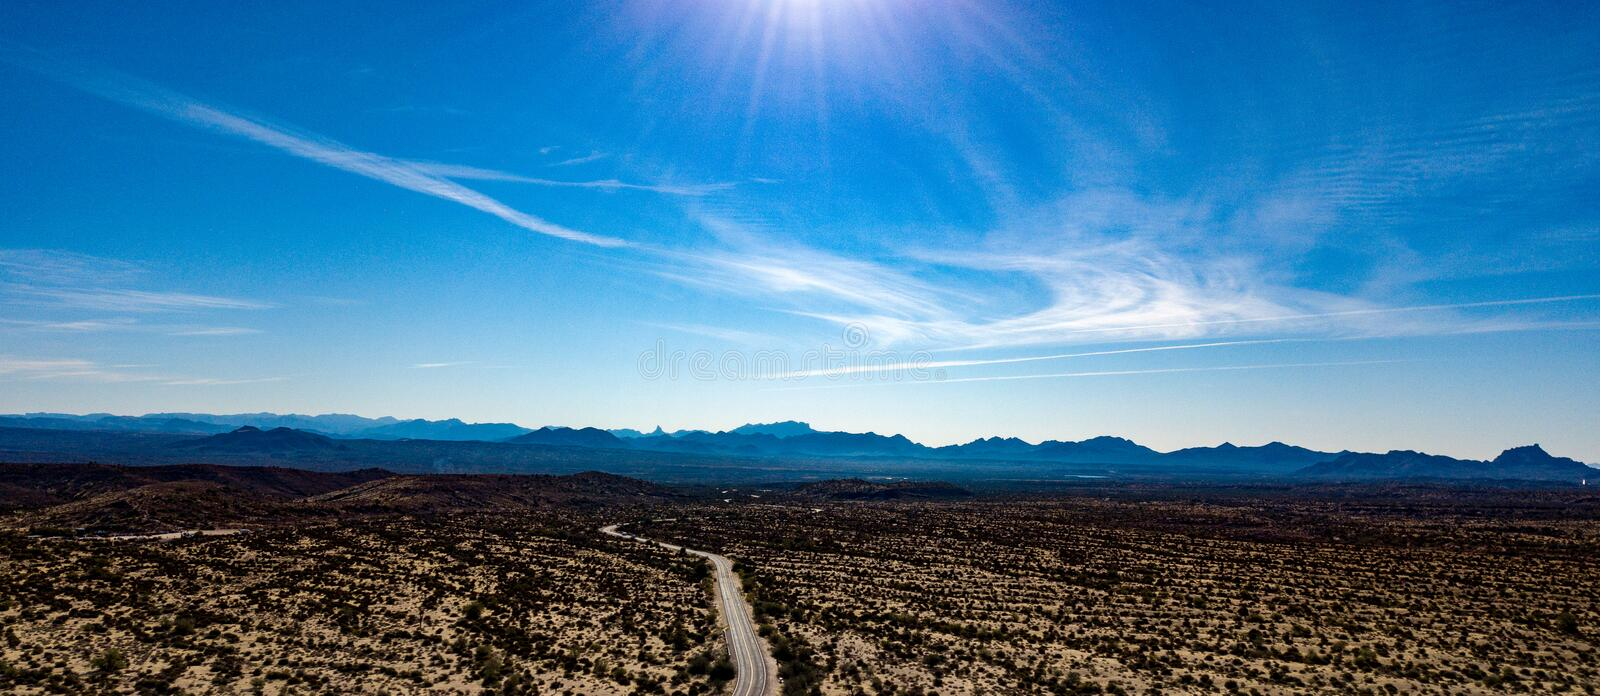 Aerial View Of McDowell Regional Park Near Phoenix, Arizona. View of rugged hills, mountains, and desert landscape in McDowell Regional Park near Phoenix royalty free stock photography